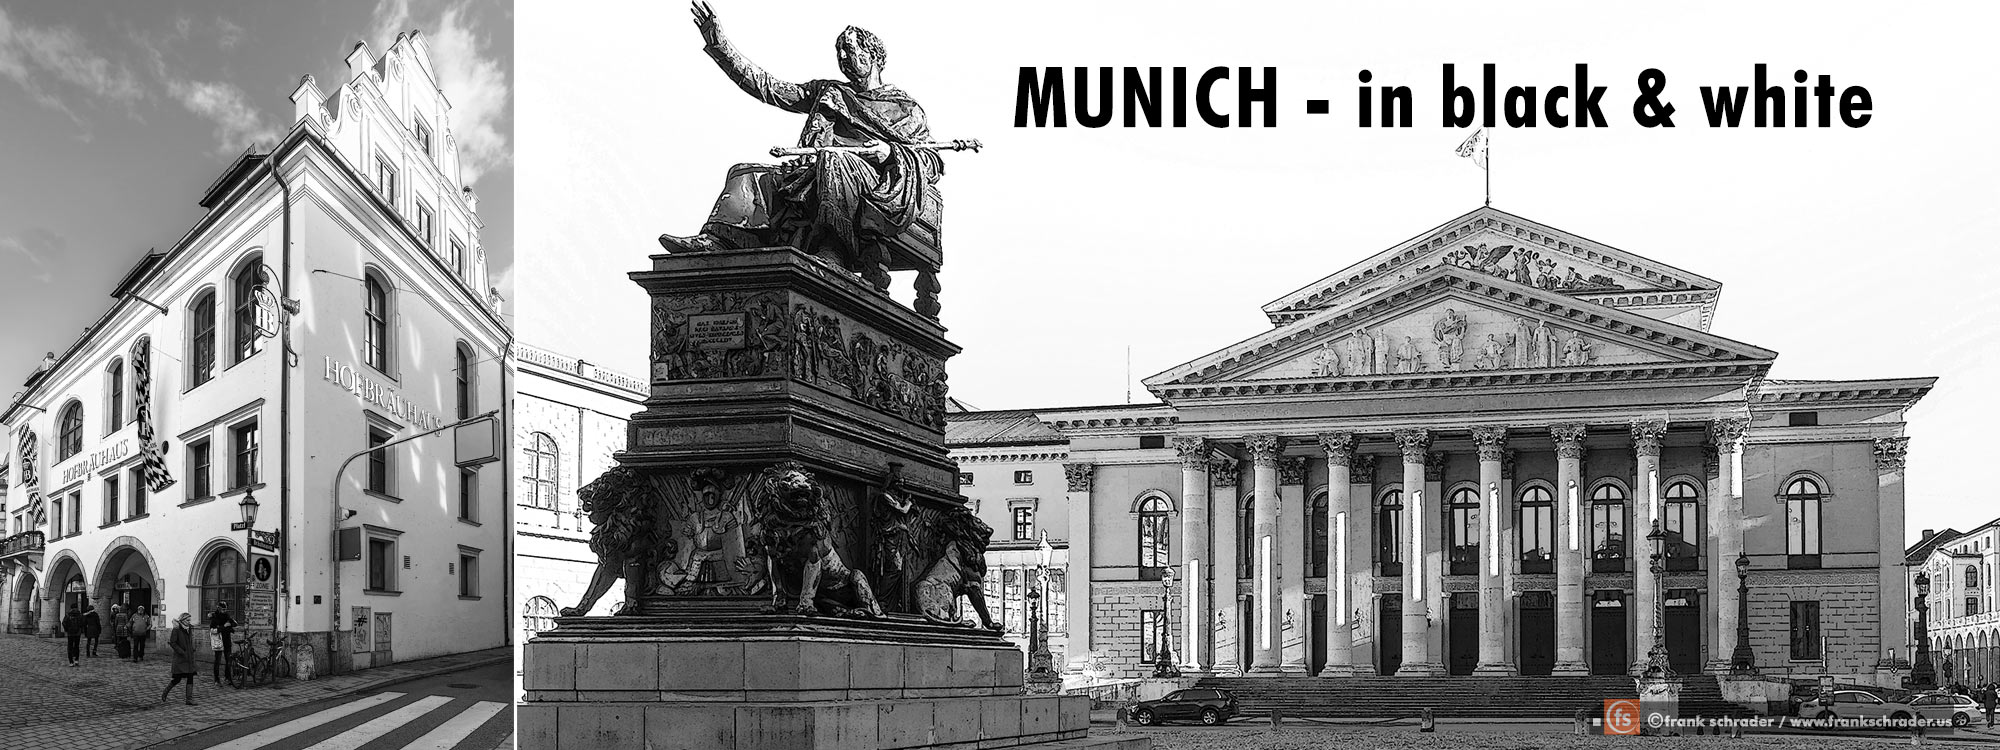 Munich in balck & white